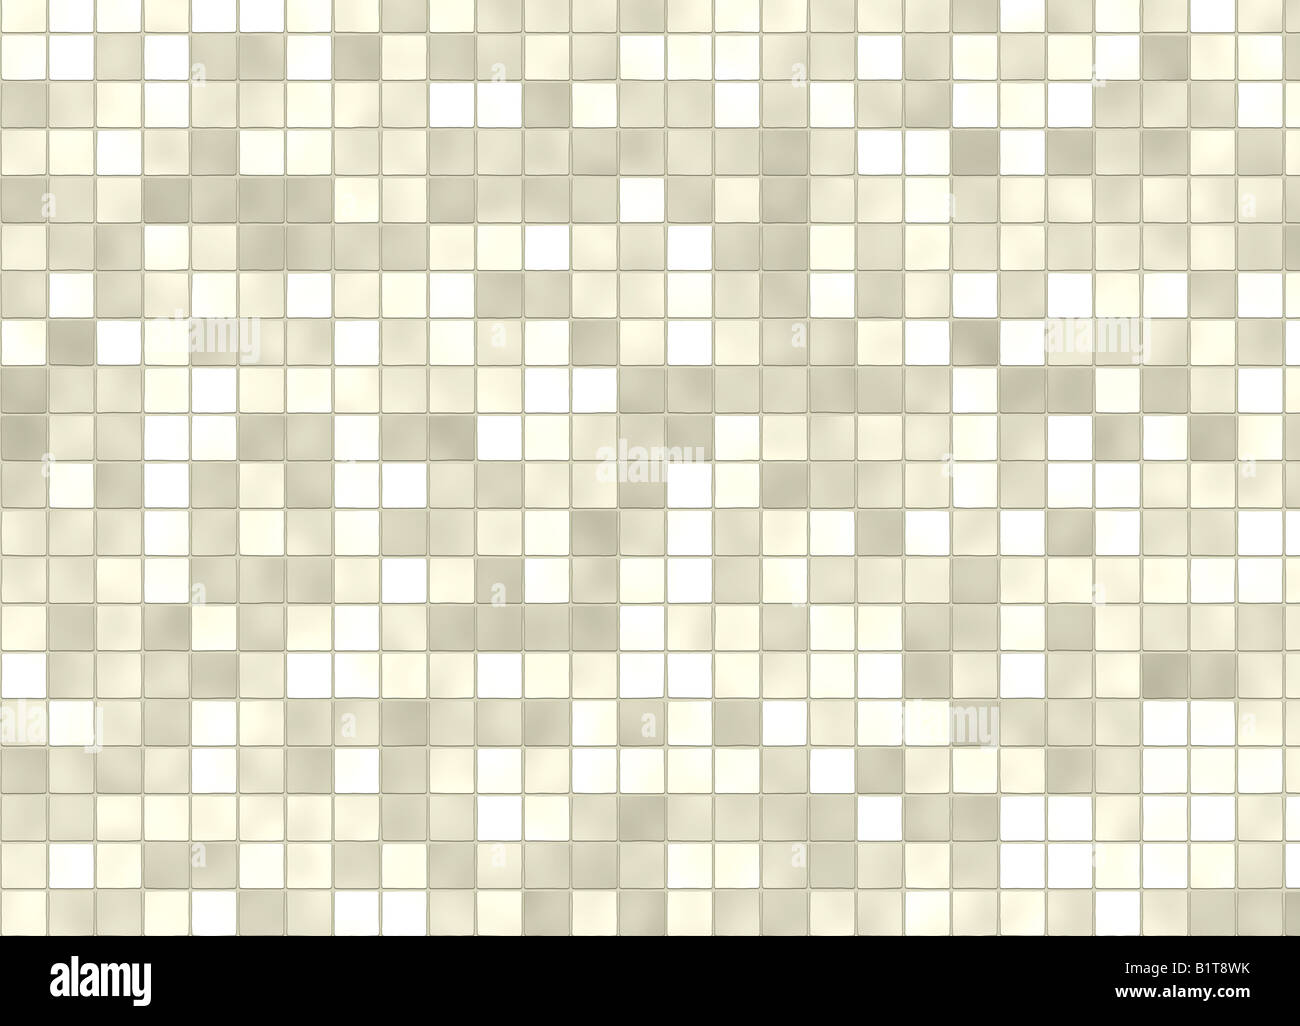 Small Tiles Texture Background Stock Photo, Royalty Free. Landscapers In My Area. Outdoor Kitchen Design. Porcelain Shower Pan. Planet Stone. Plant Stand. Craftsman Style Shutters. What Is Caesarstone. American Iron Works